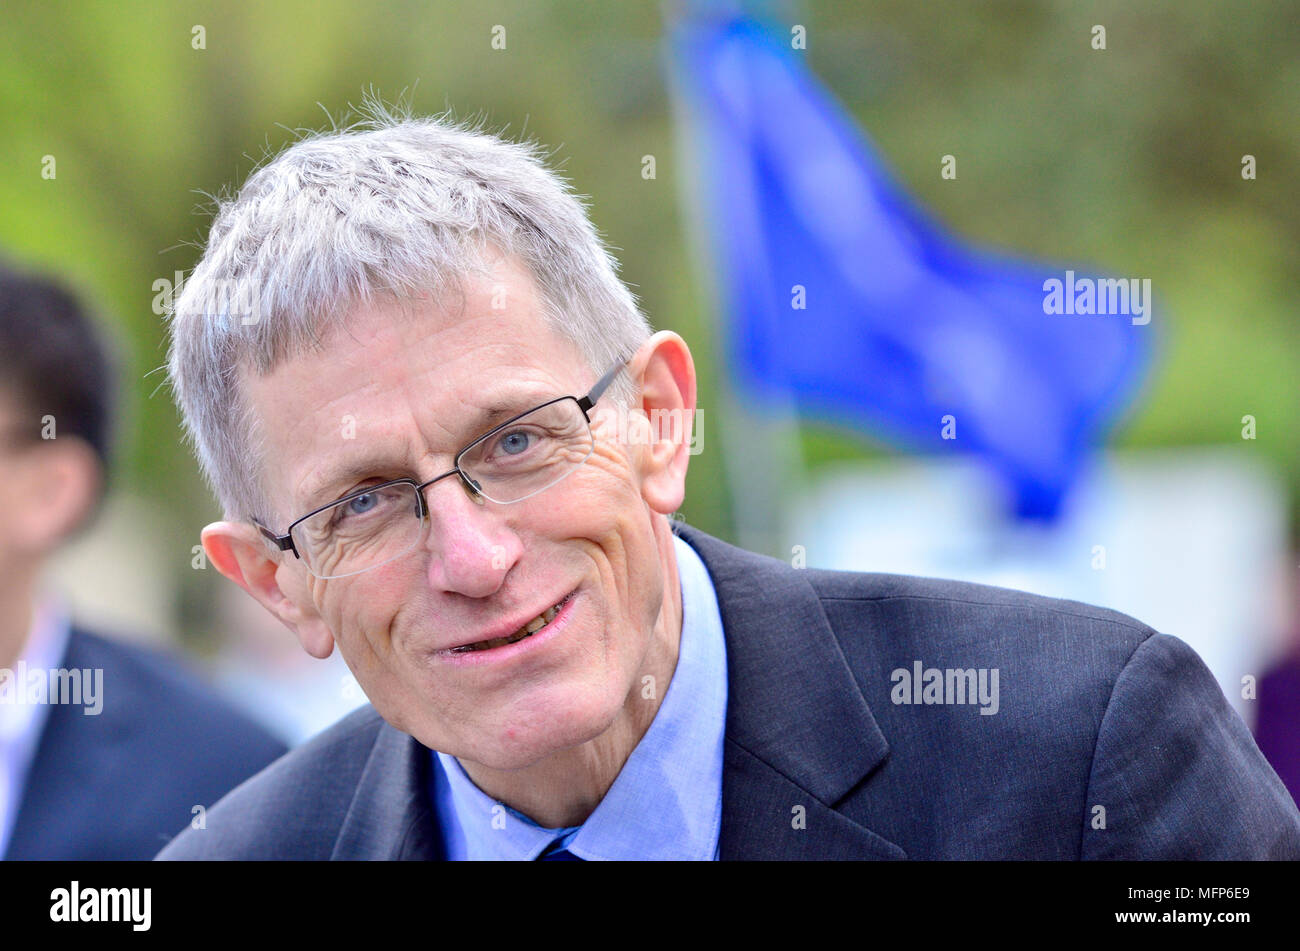 Simon Calder - travel writer and broadcaster - Stock Image